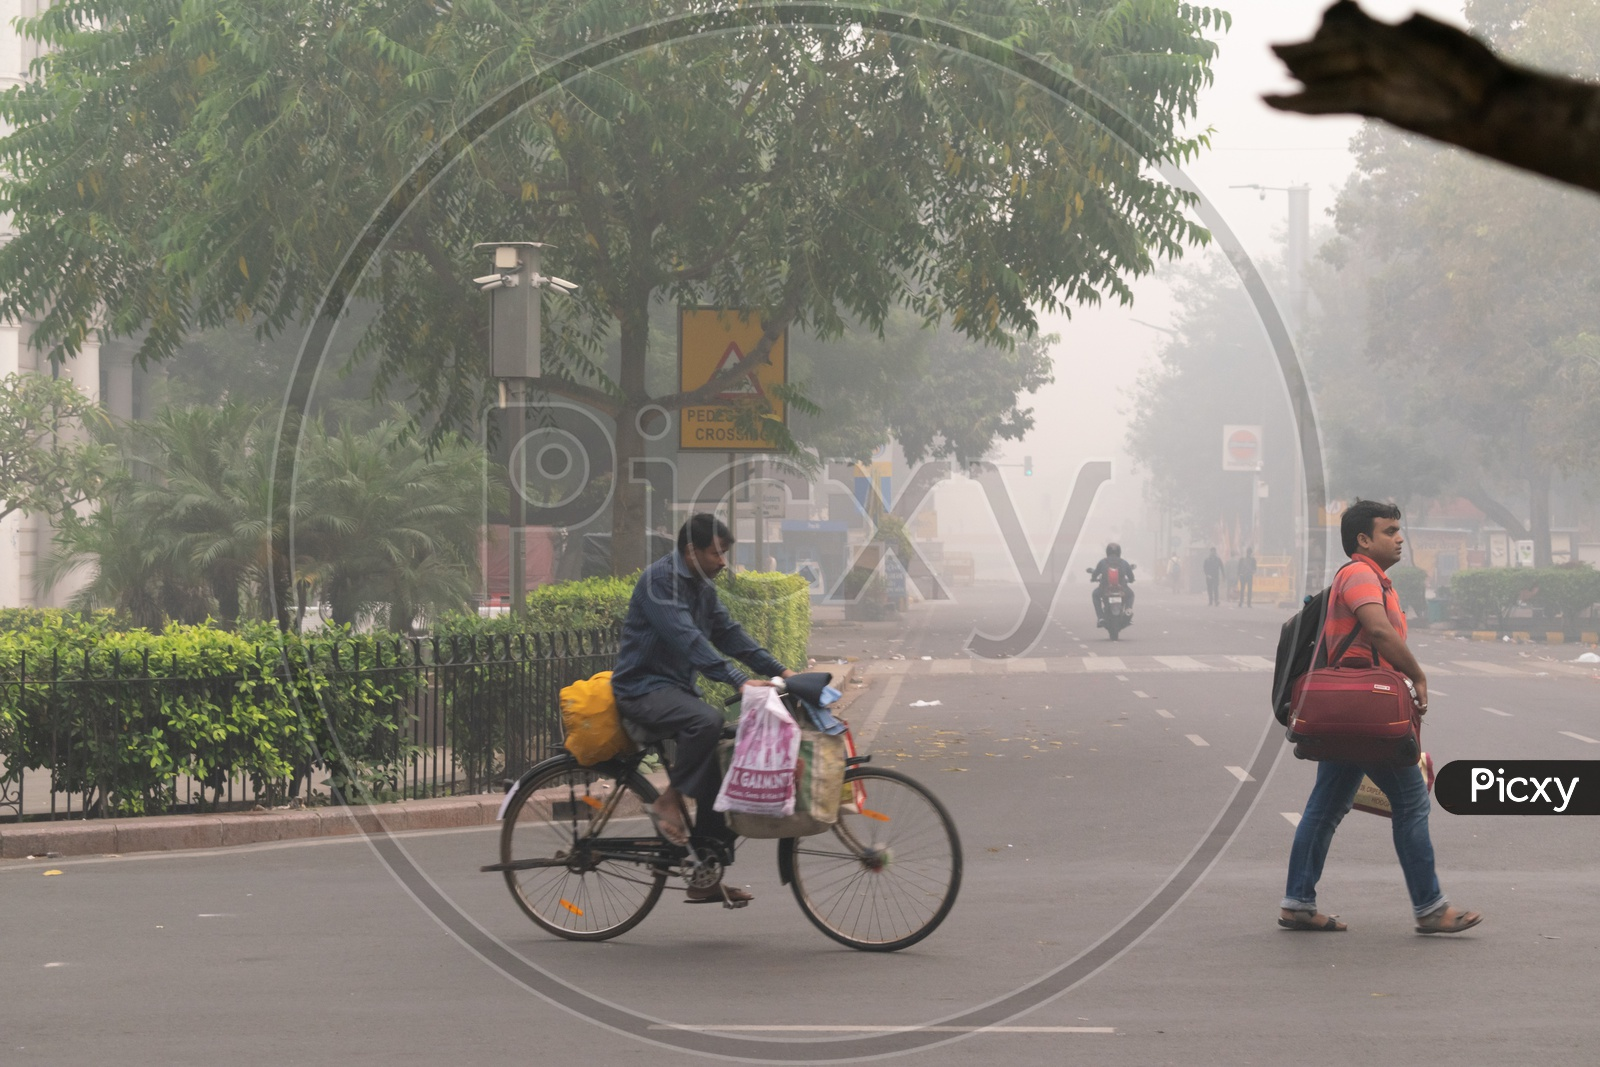 A Man Riding Bicycle During Hazy Morning Due To Pollution(Smog) At Severe Level In Delhi Ncr After Diwali